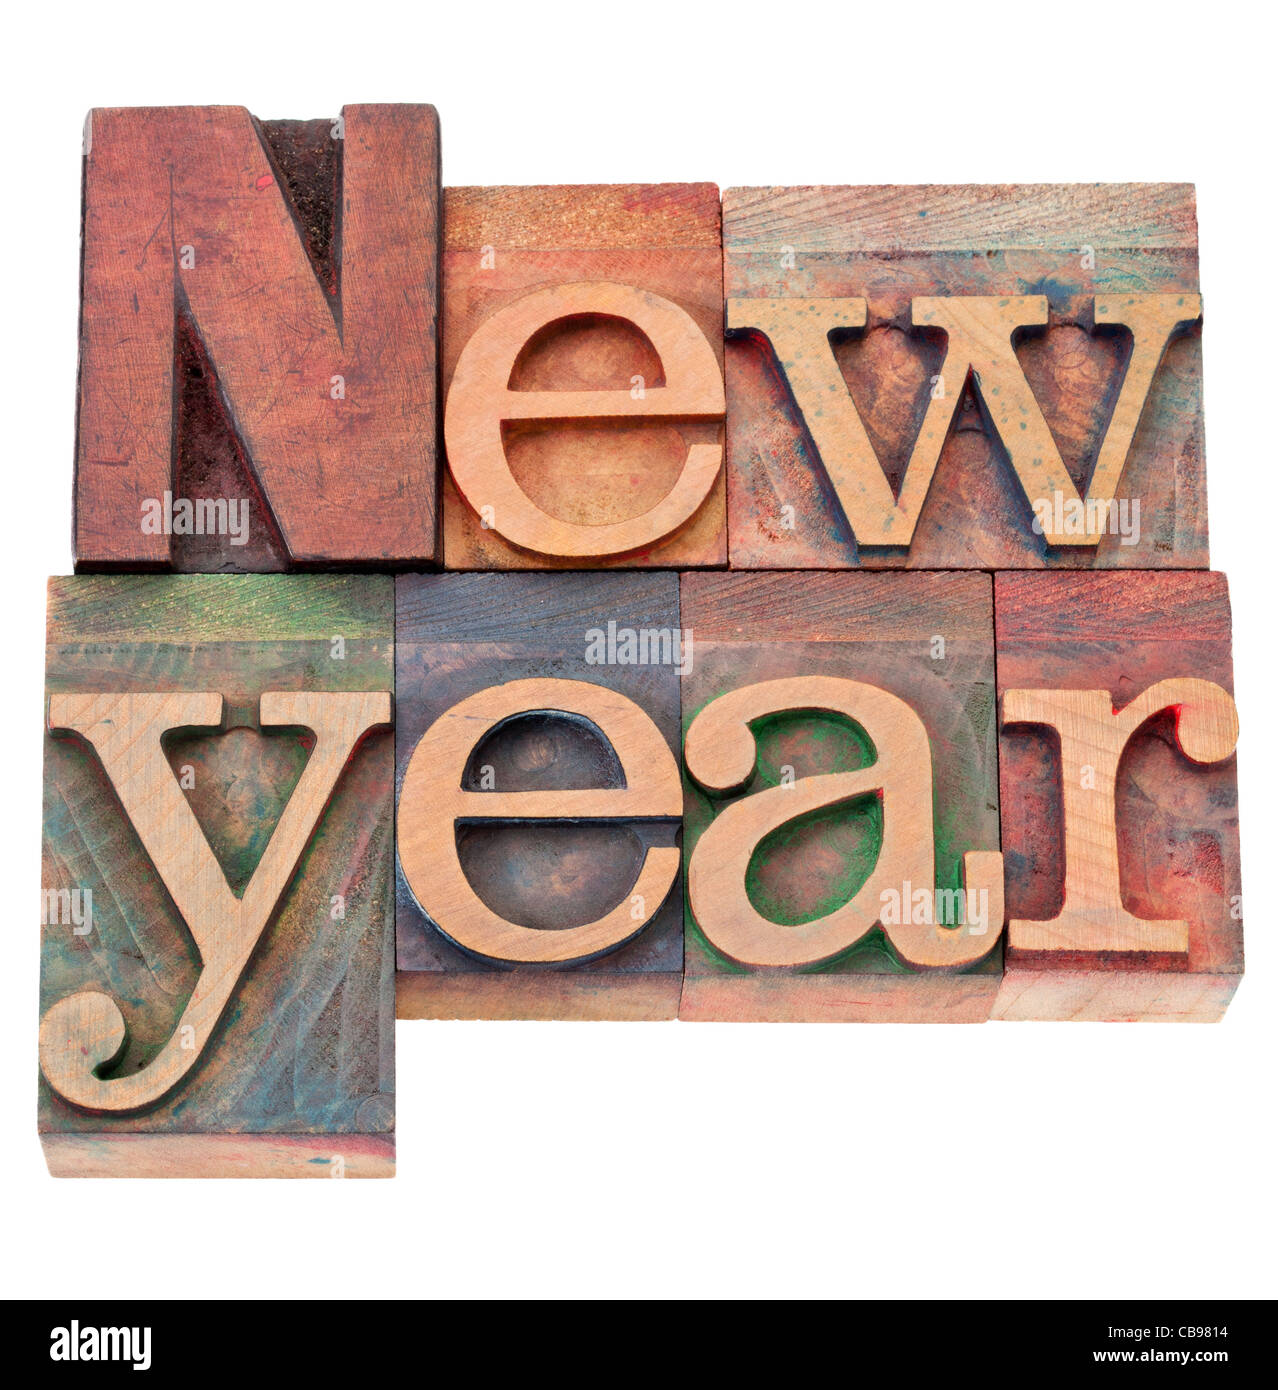 New Year - isolated text in vintage wood letterpress printing blocks - Stock Image